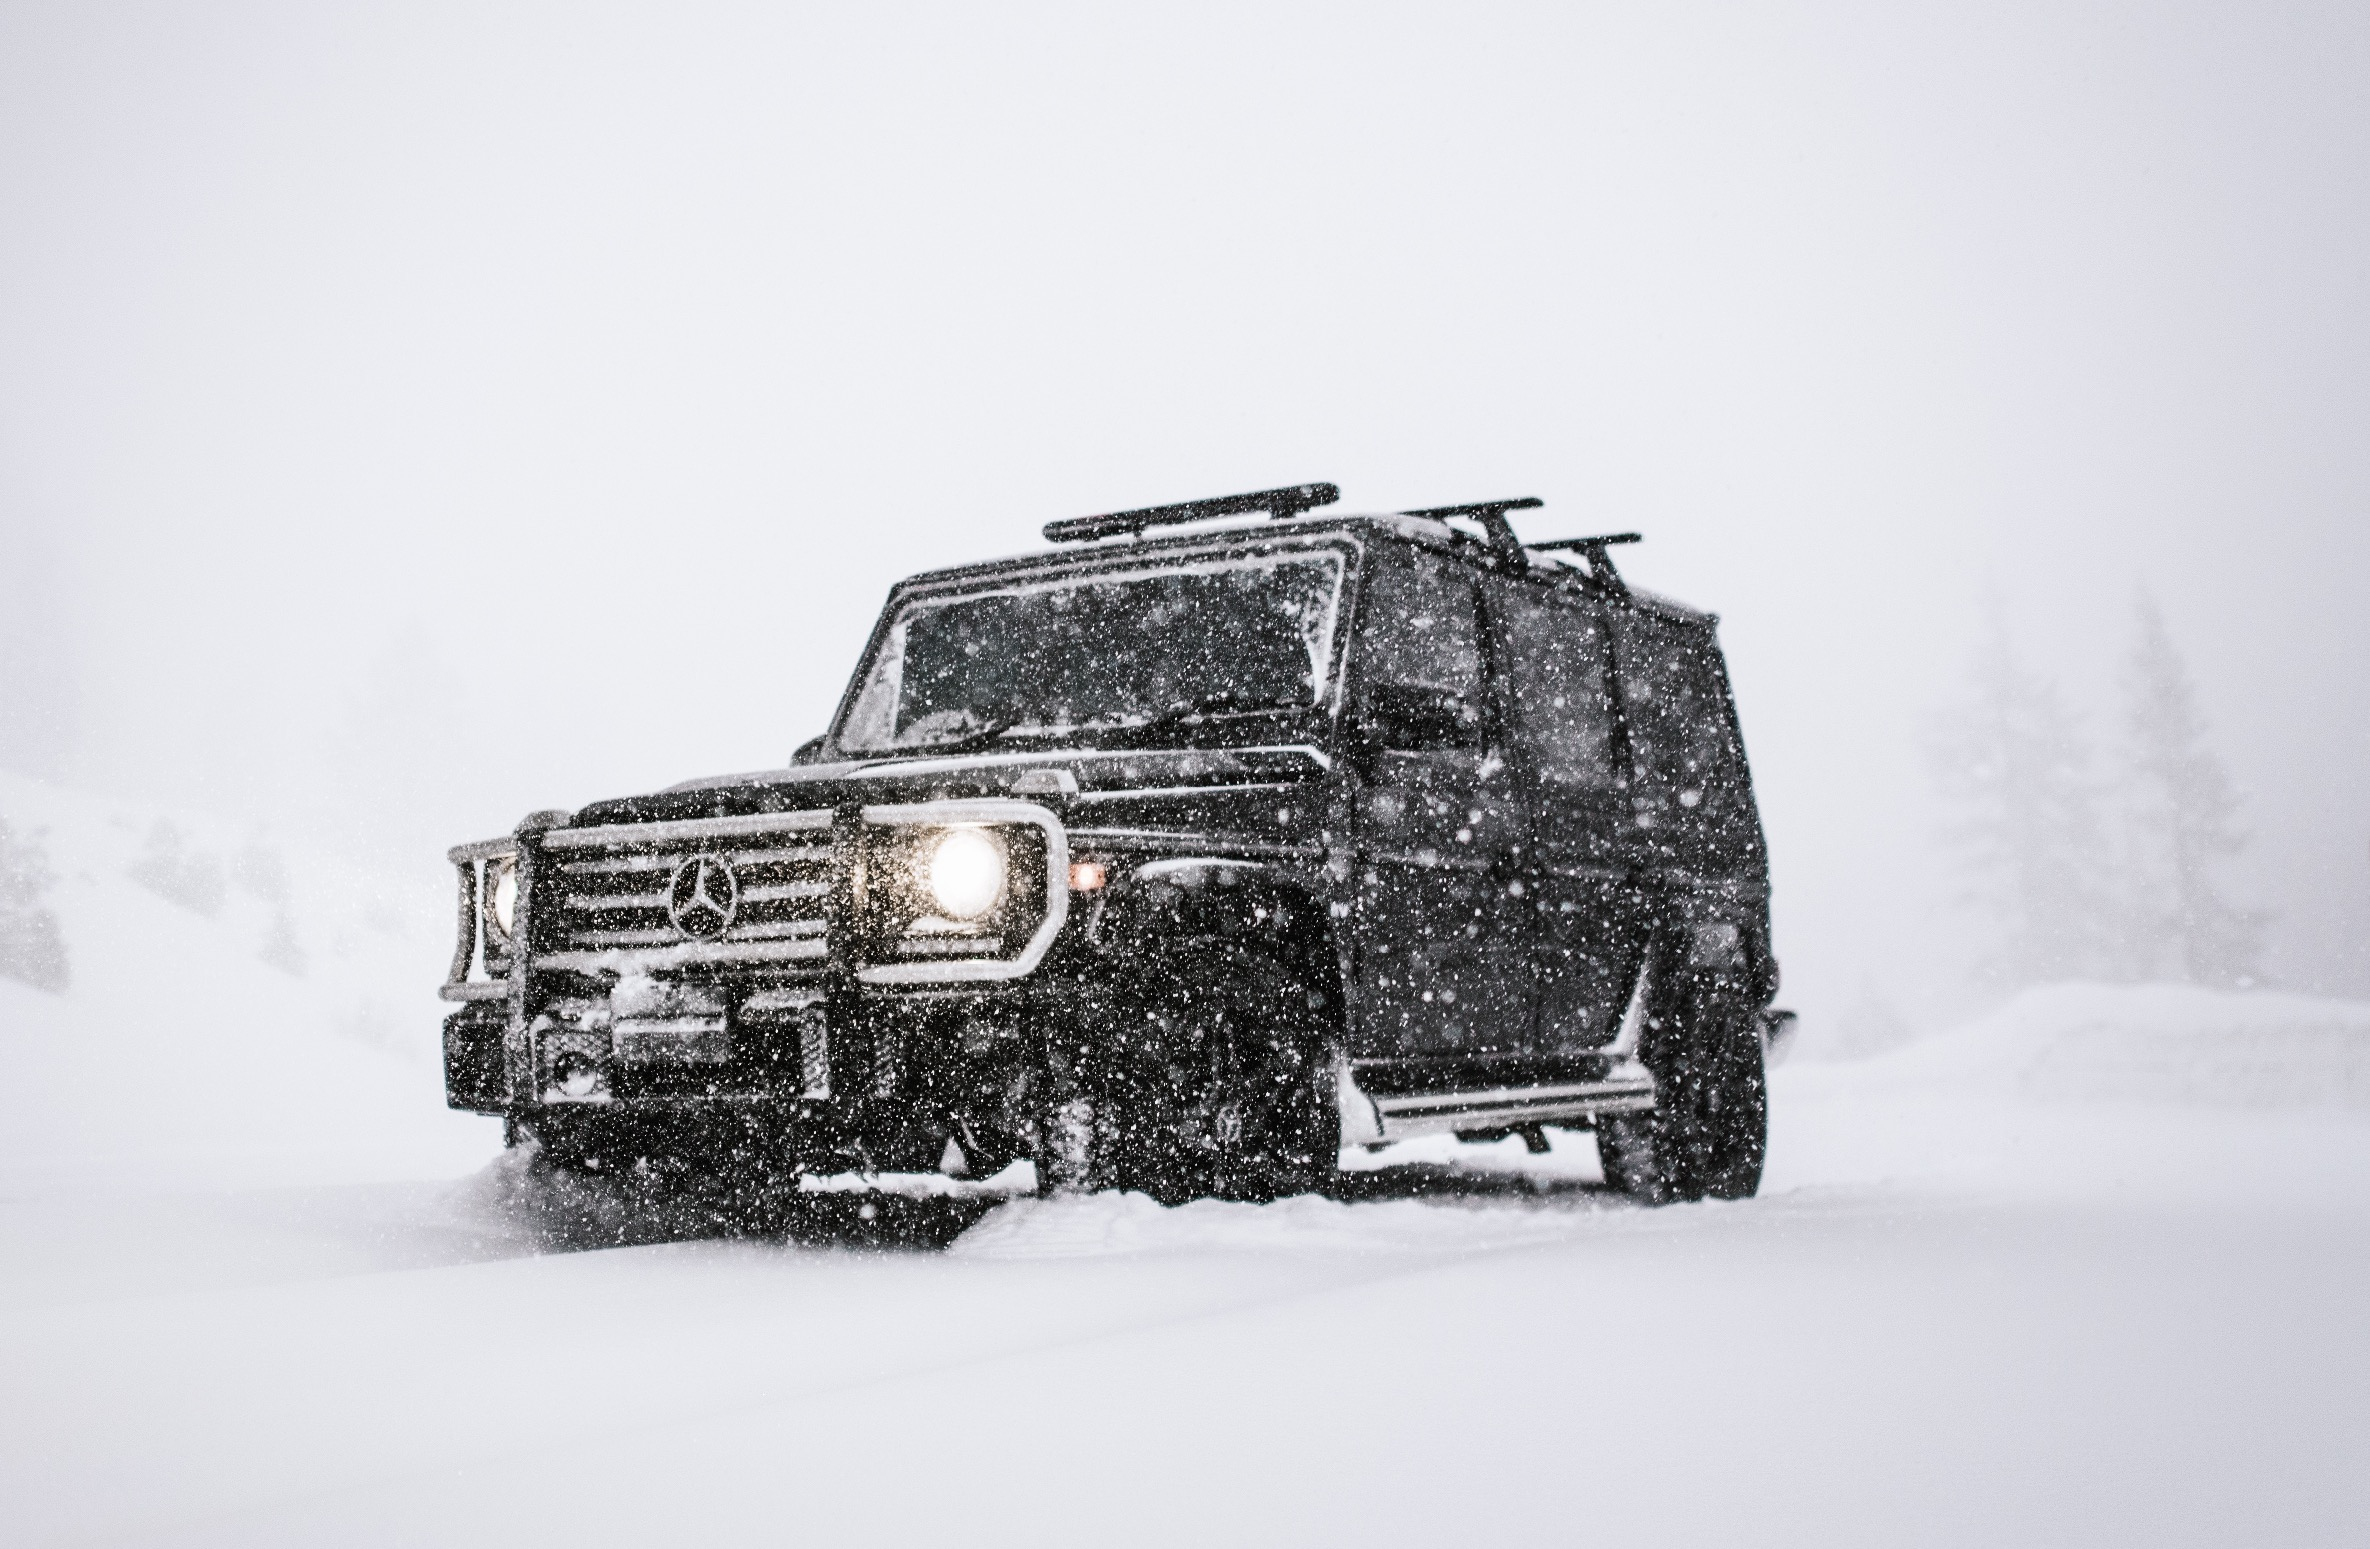 Mercedes Benz G 550 G Wagon